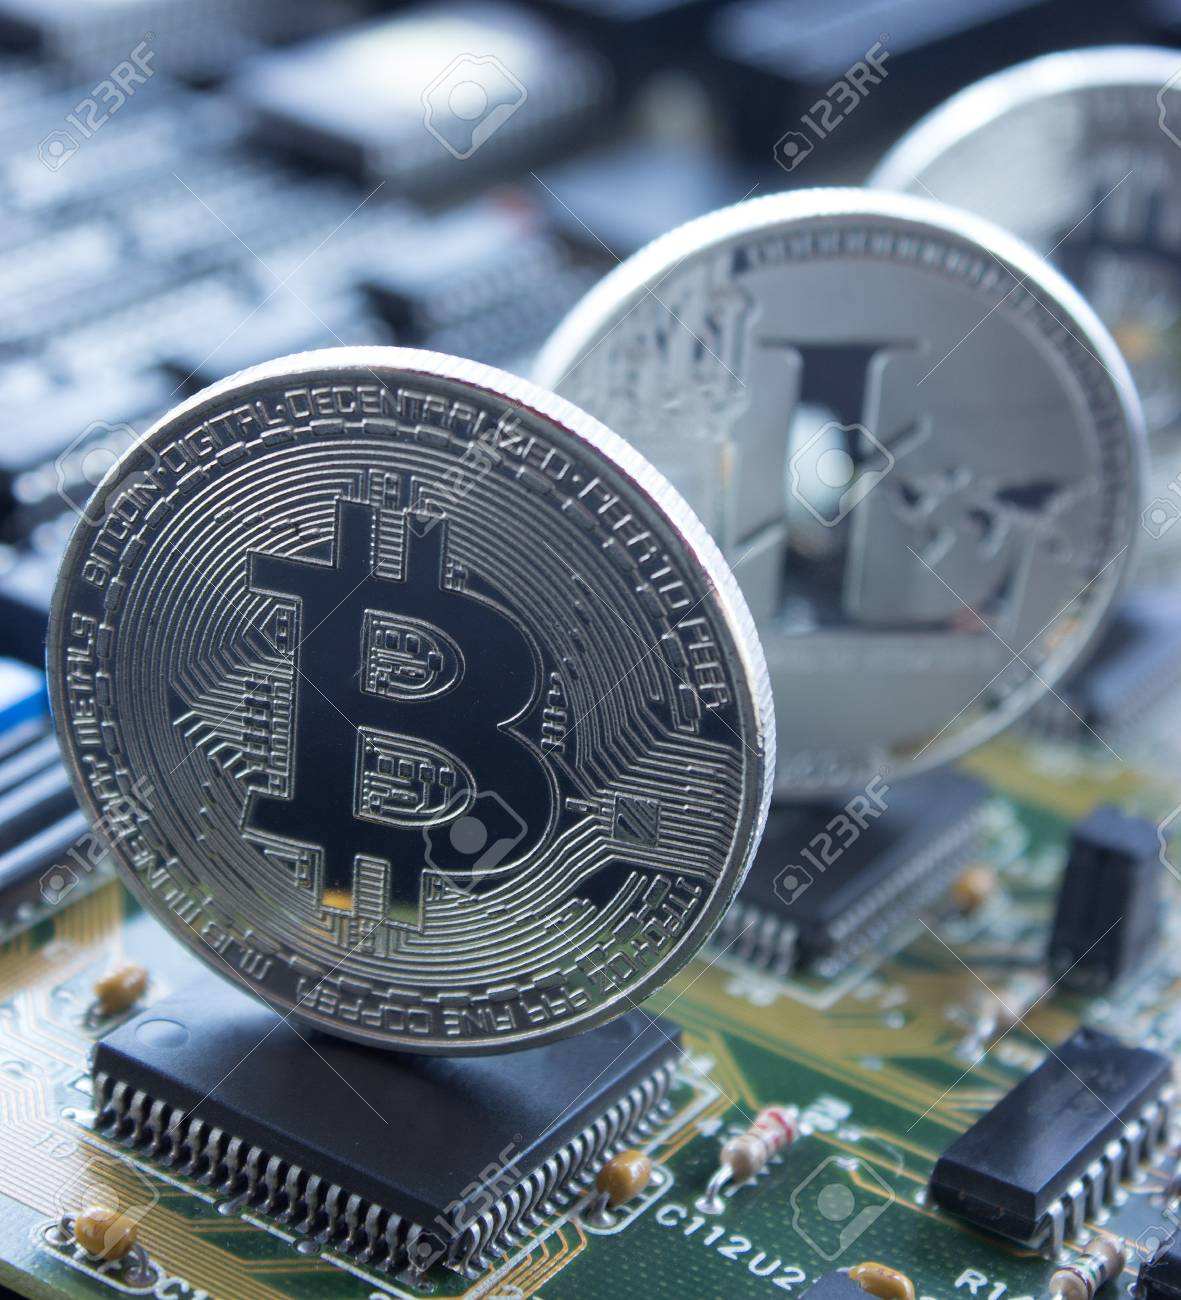 On a printed circuit board are silver coins of a digital crypto